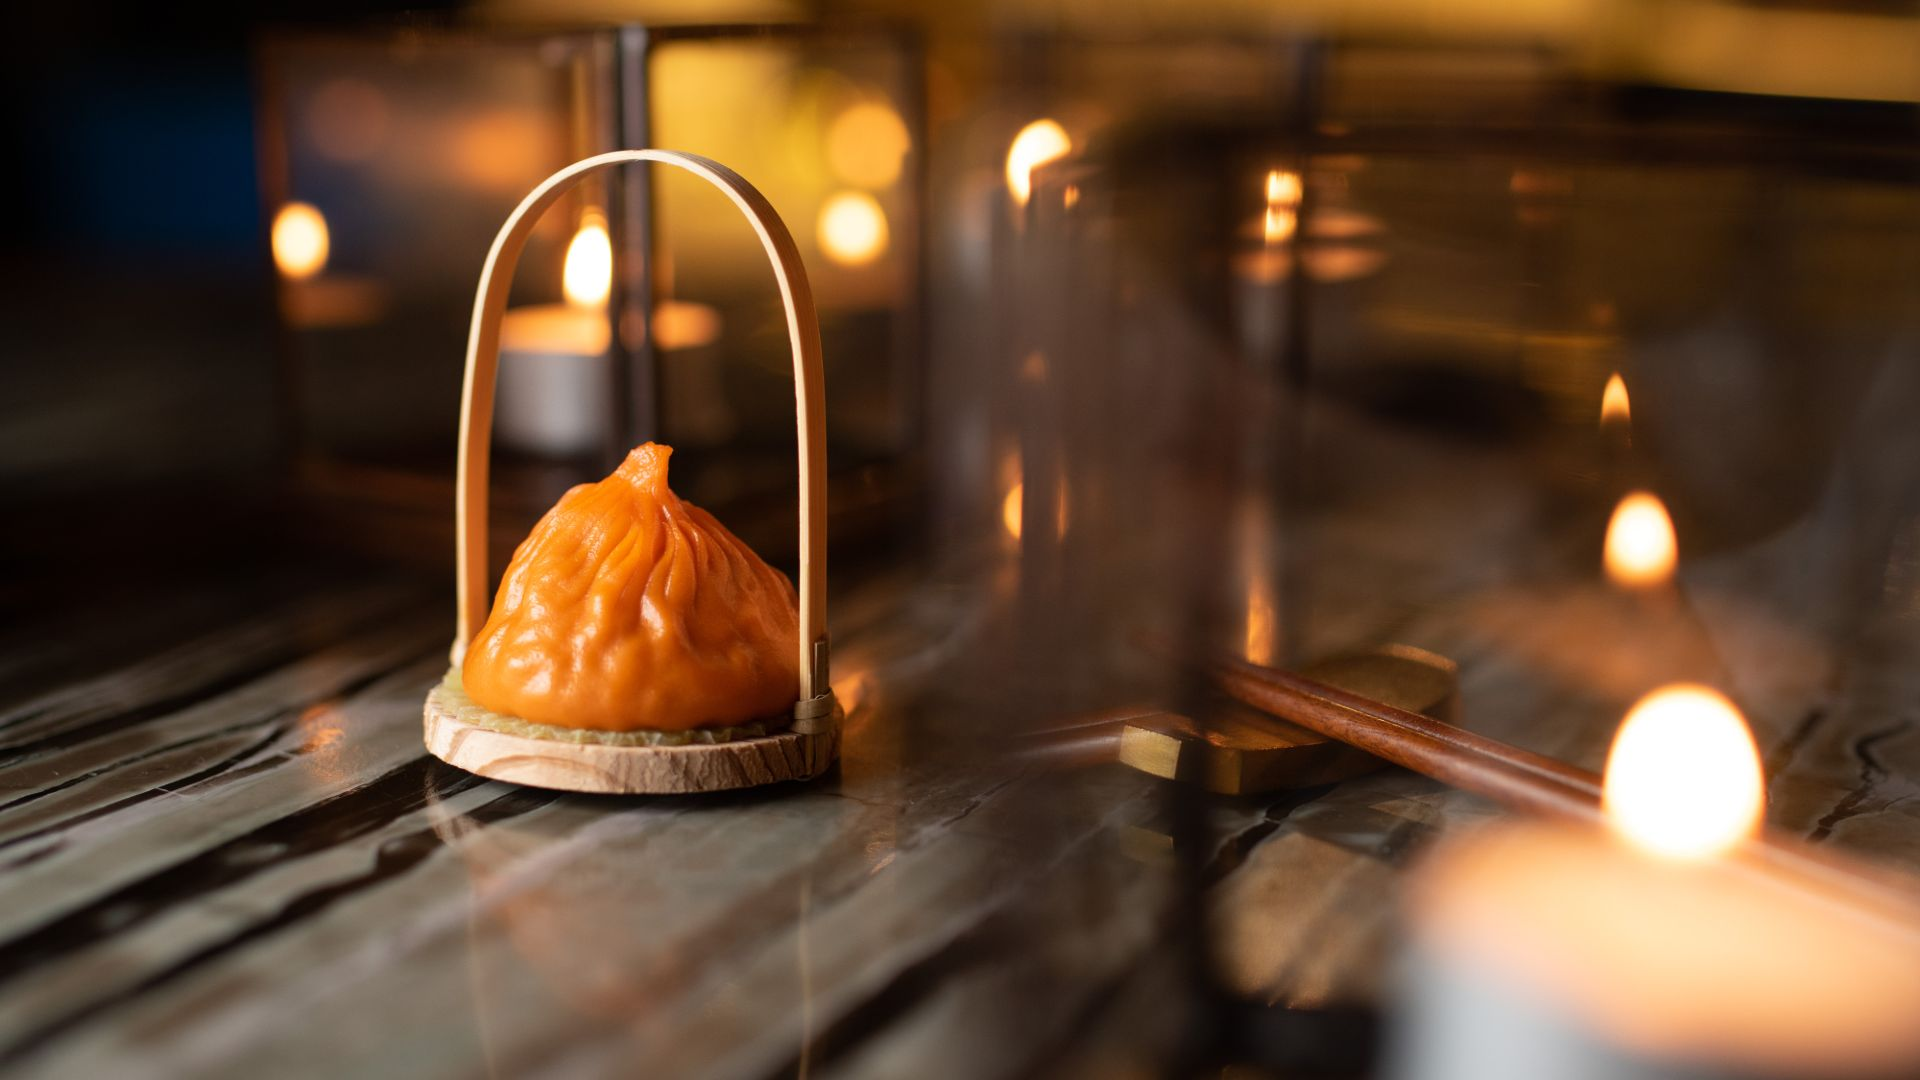 Hong Kong's most innovative dim sum restaurants